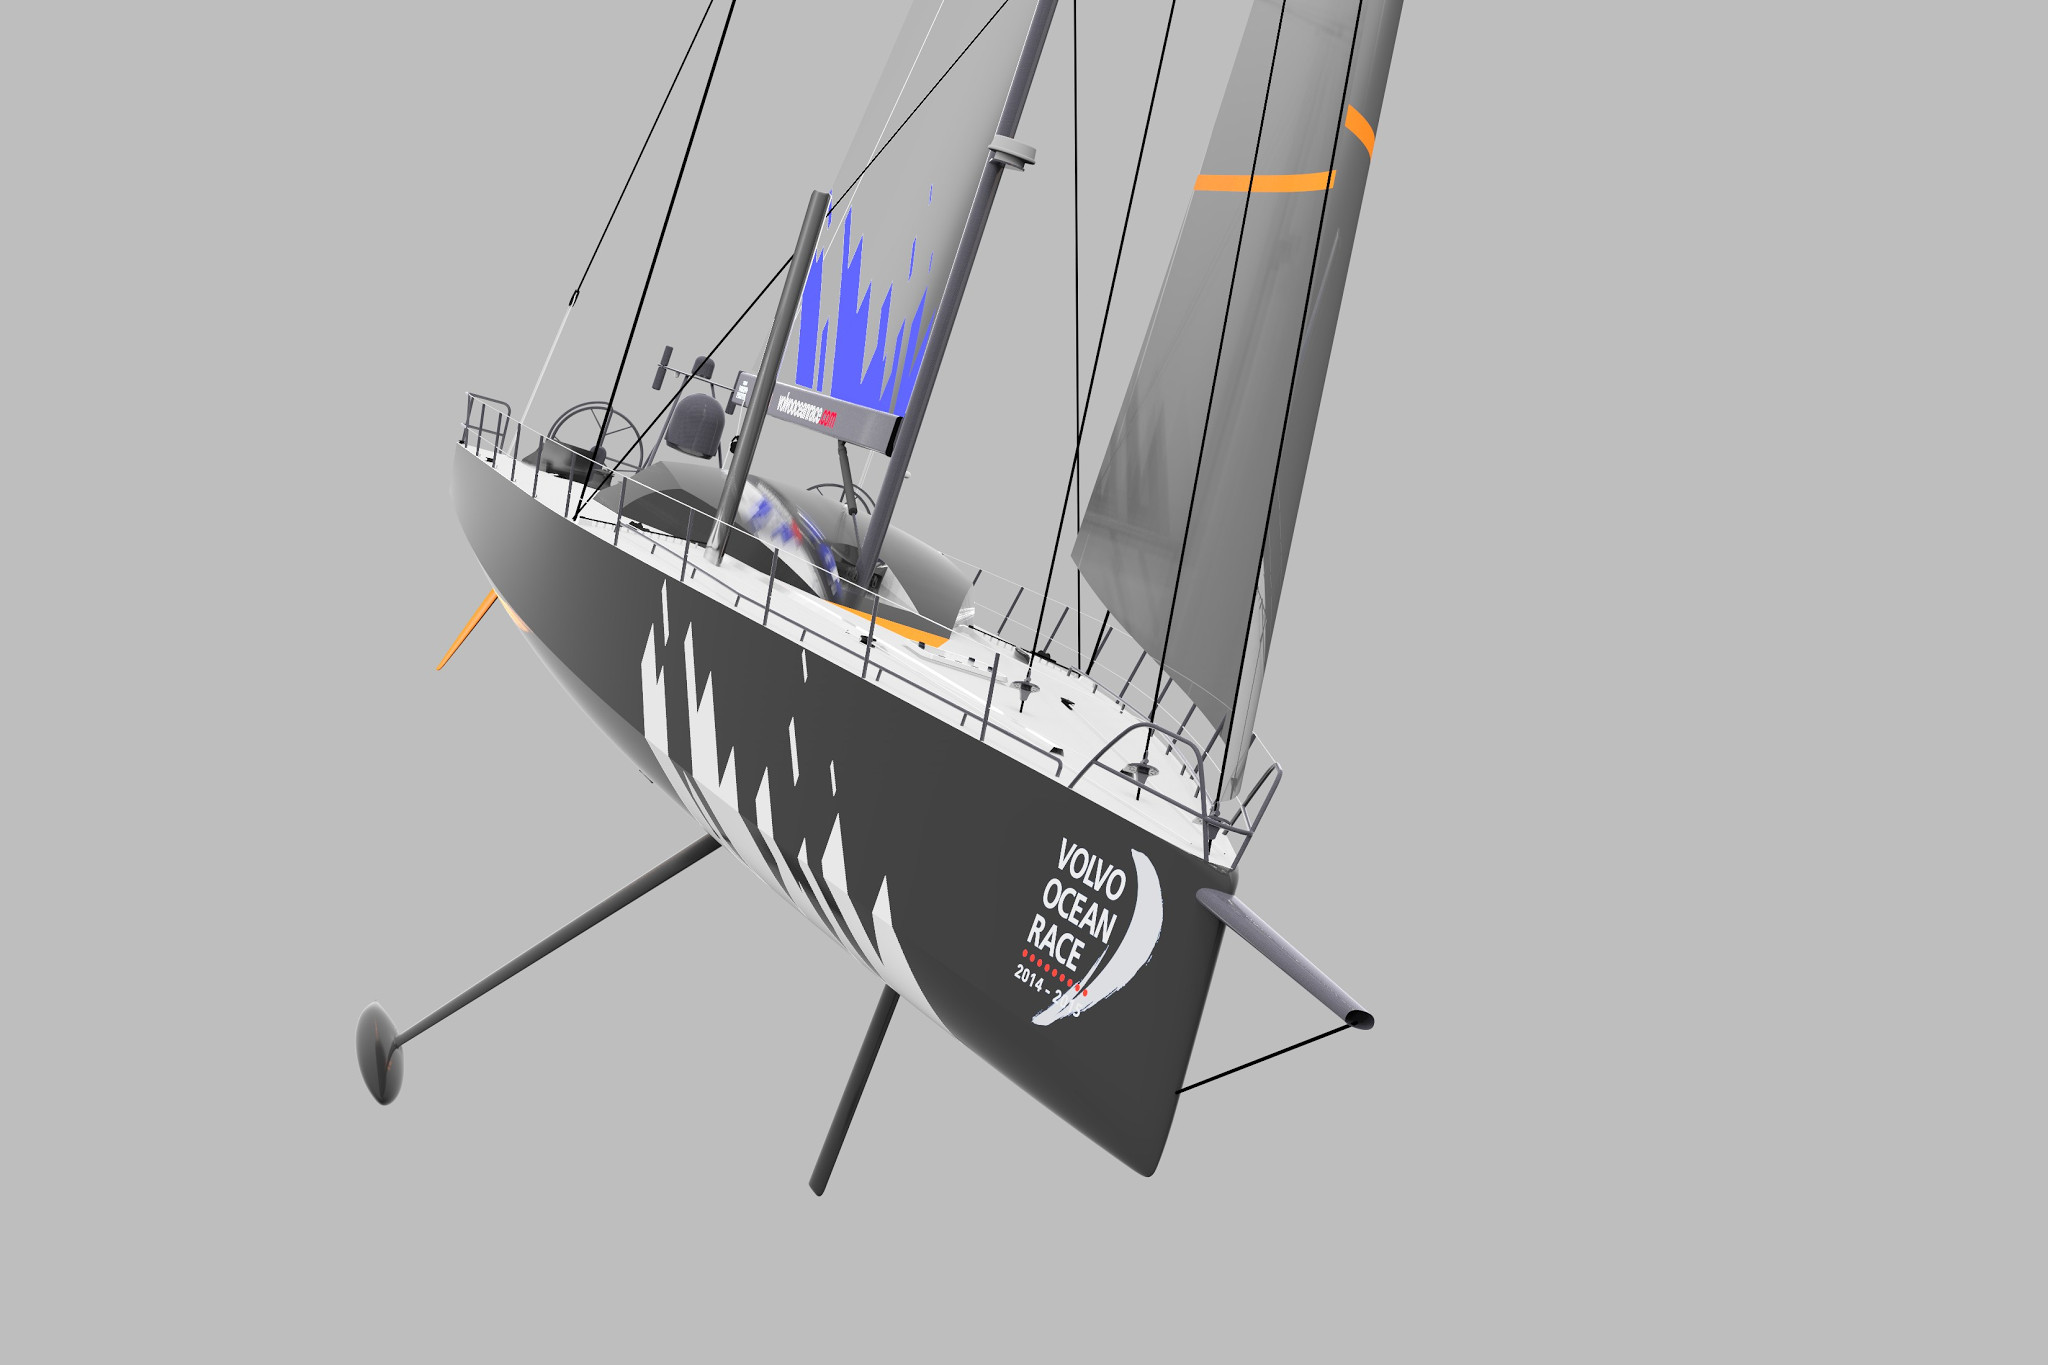 Donan Raven's Sailing Trivia: the design for the Volvo Ocean Race 2014-2015, 2017-2018